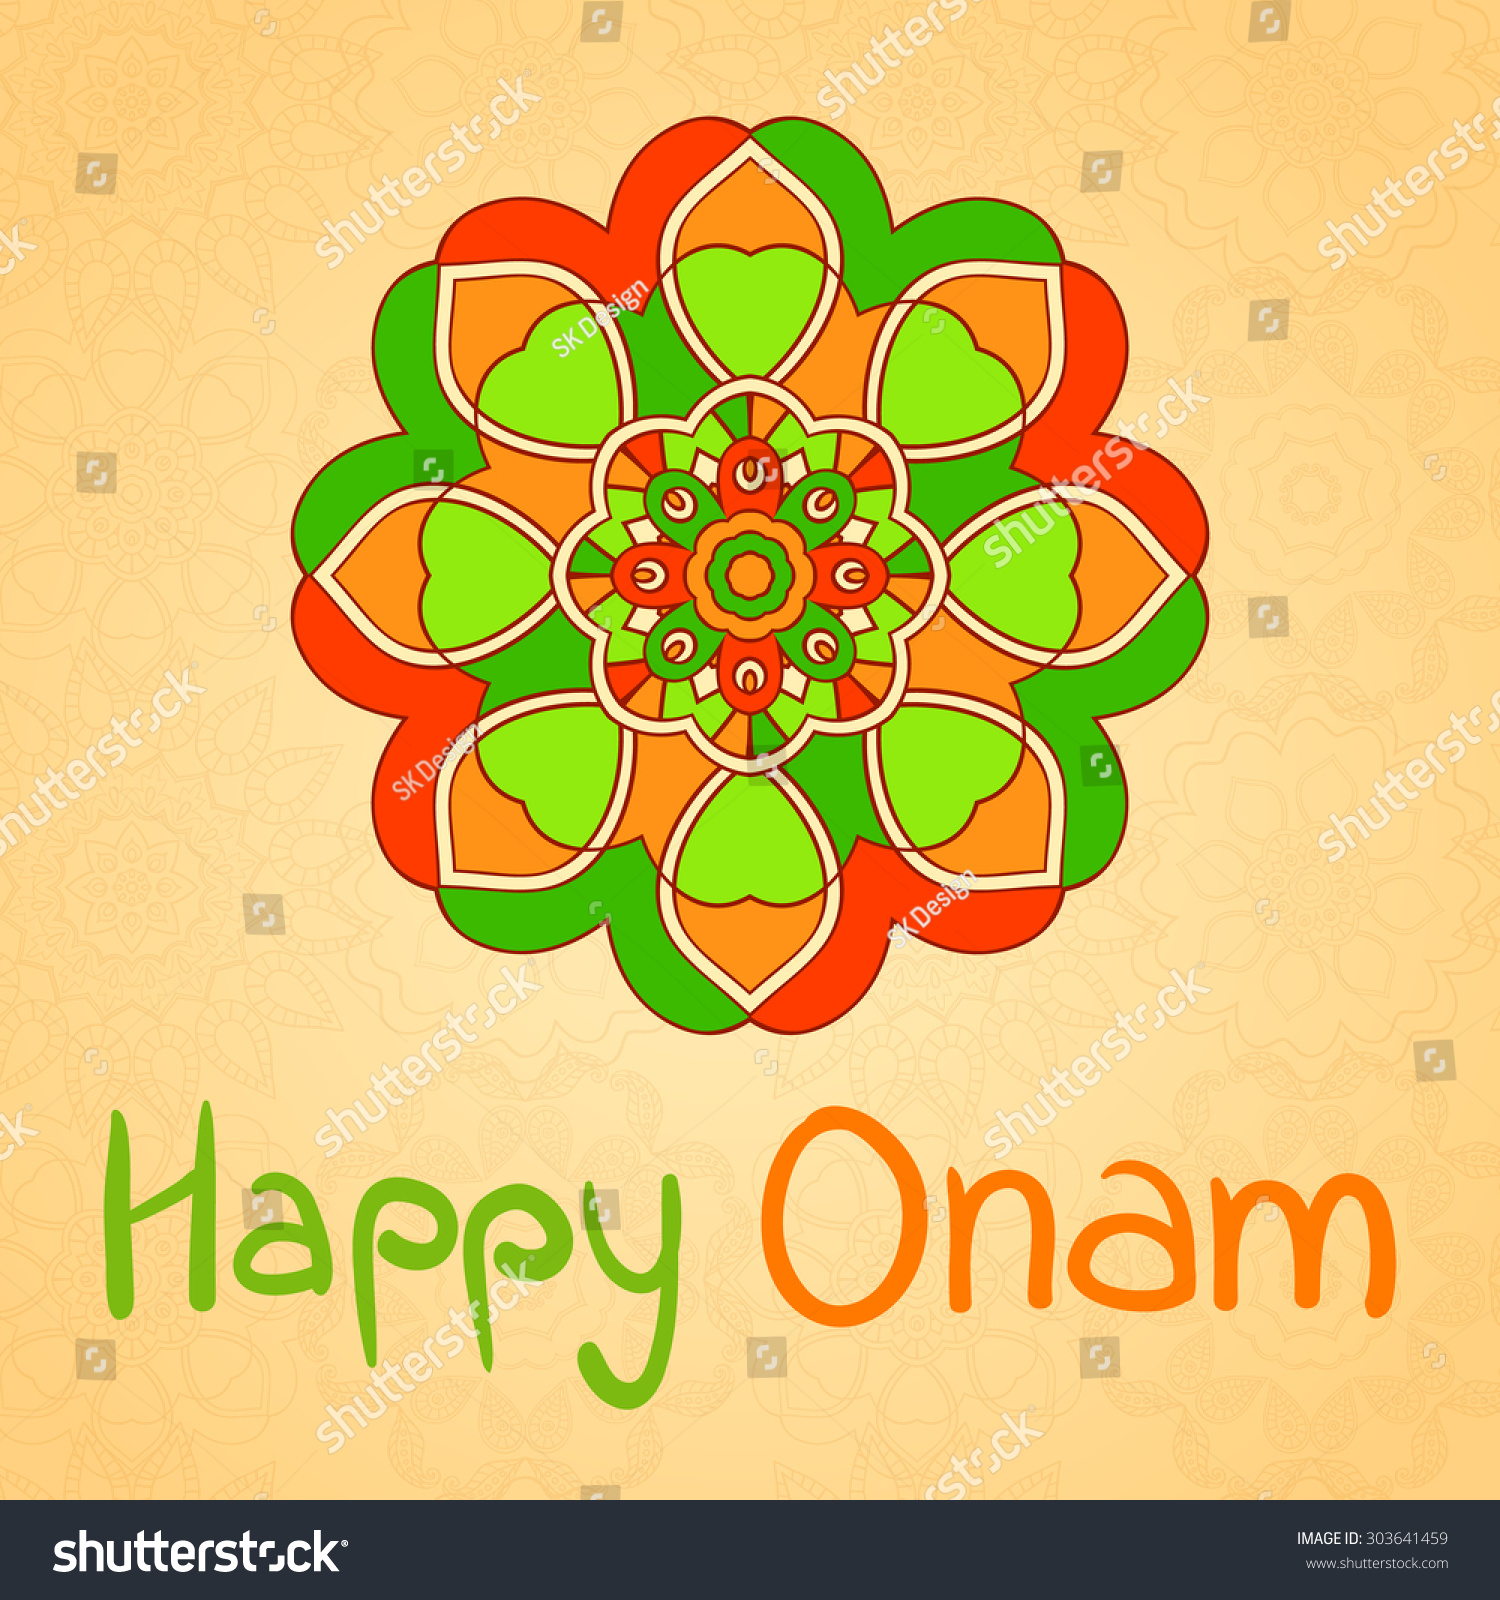 Happy onam greeting card indian festival stock vector 303641459 happy onam greeting card indian festival celebration beautiful floral vintage decoration in mehndi style kristyandbryce Image collections